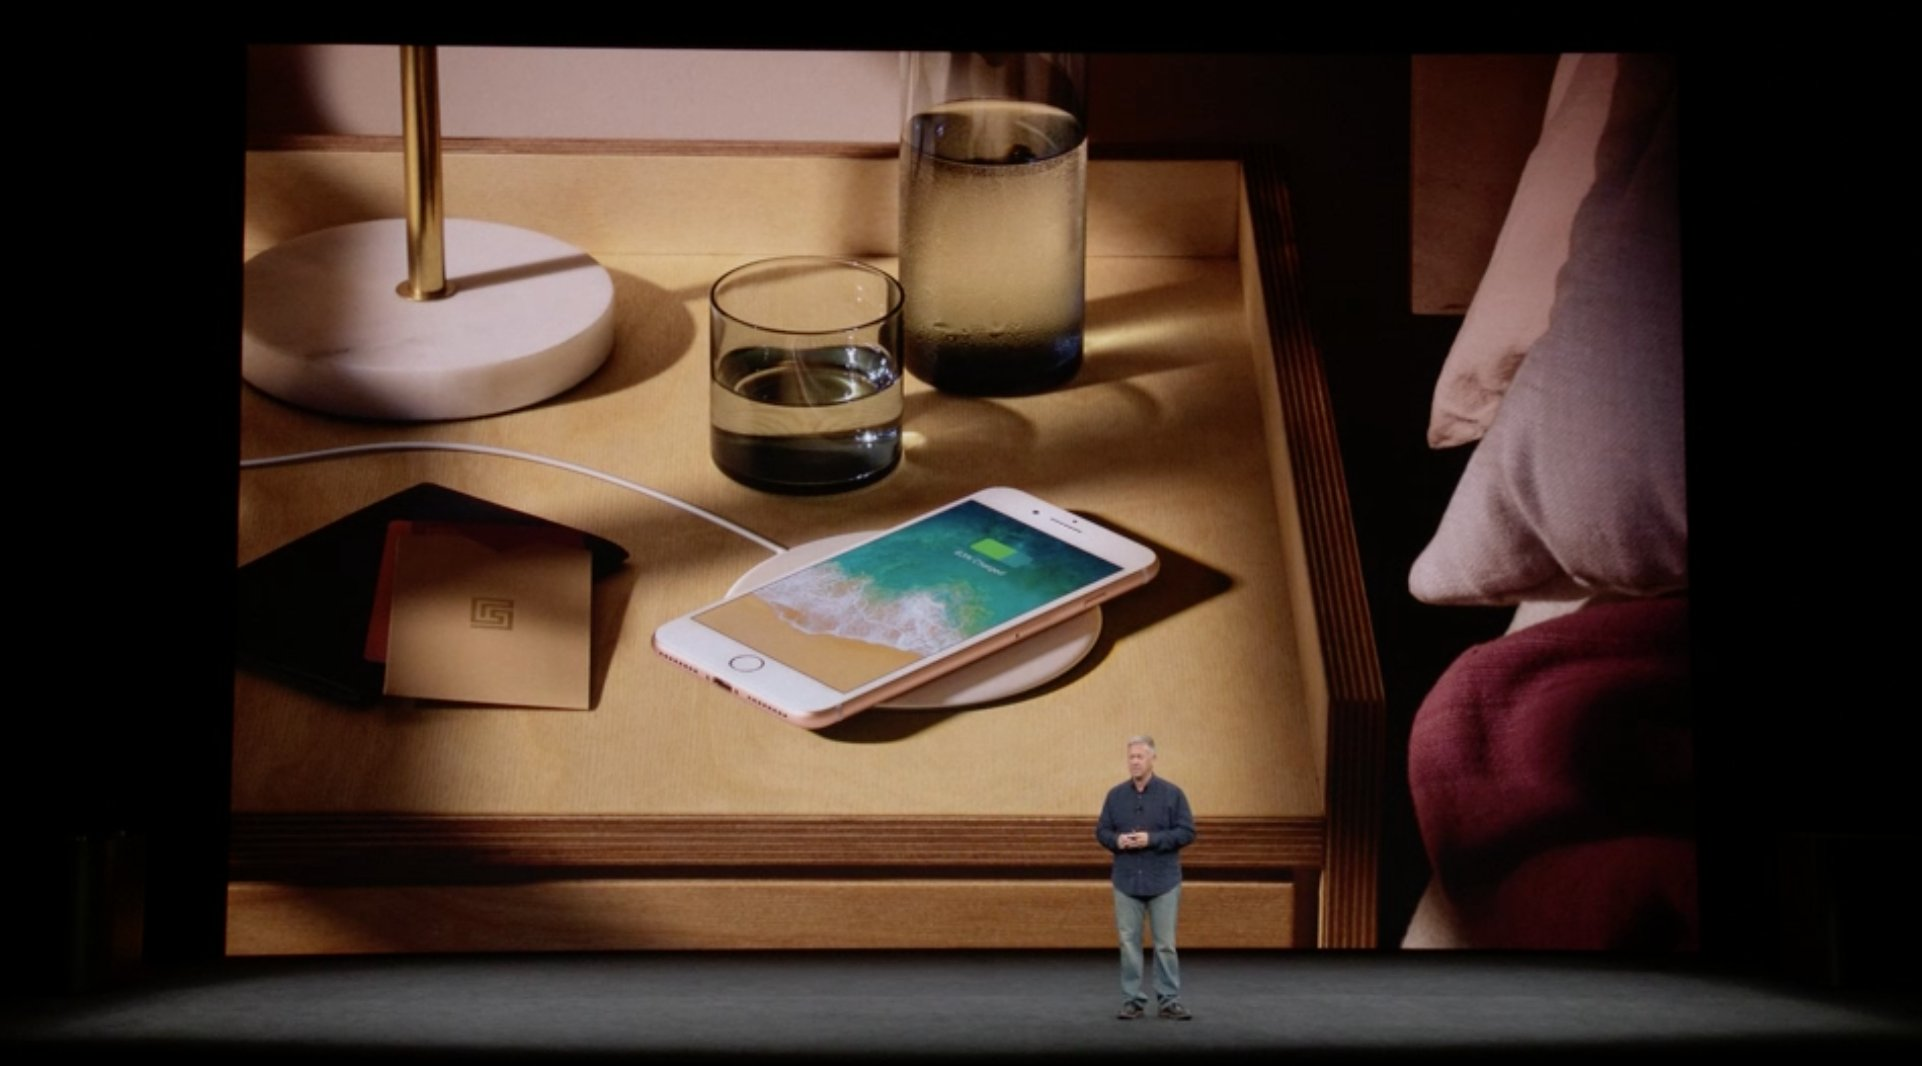 Wireless charging will be available on the iPhone 8 https://t.co/vpJm79i84W #AppleEvent https://t.co/jSXDGSQ27E